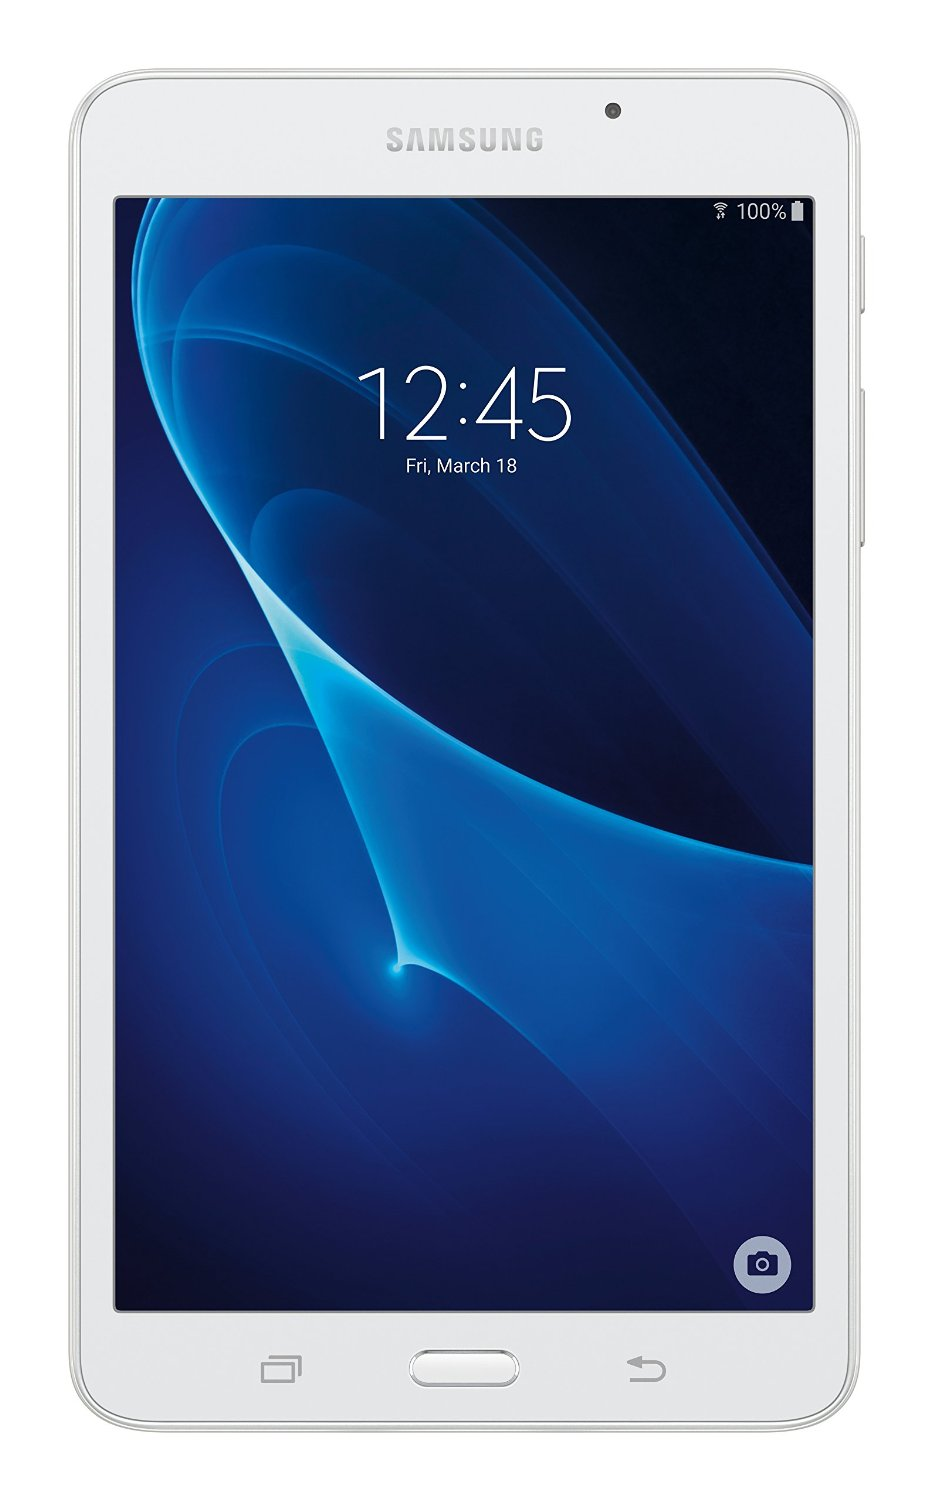 samsung galaxy tab a 7 inch tablet 8gb white best reviews tablet. Black Bedroom Furniture Sets. Home Design Ideas